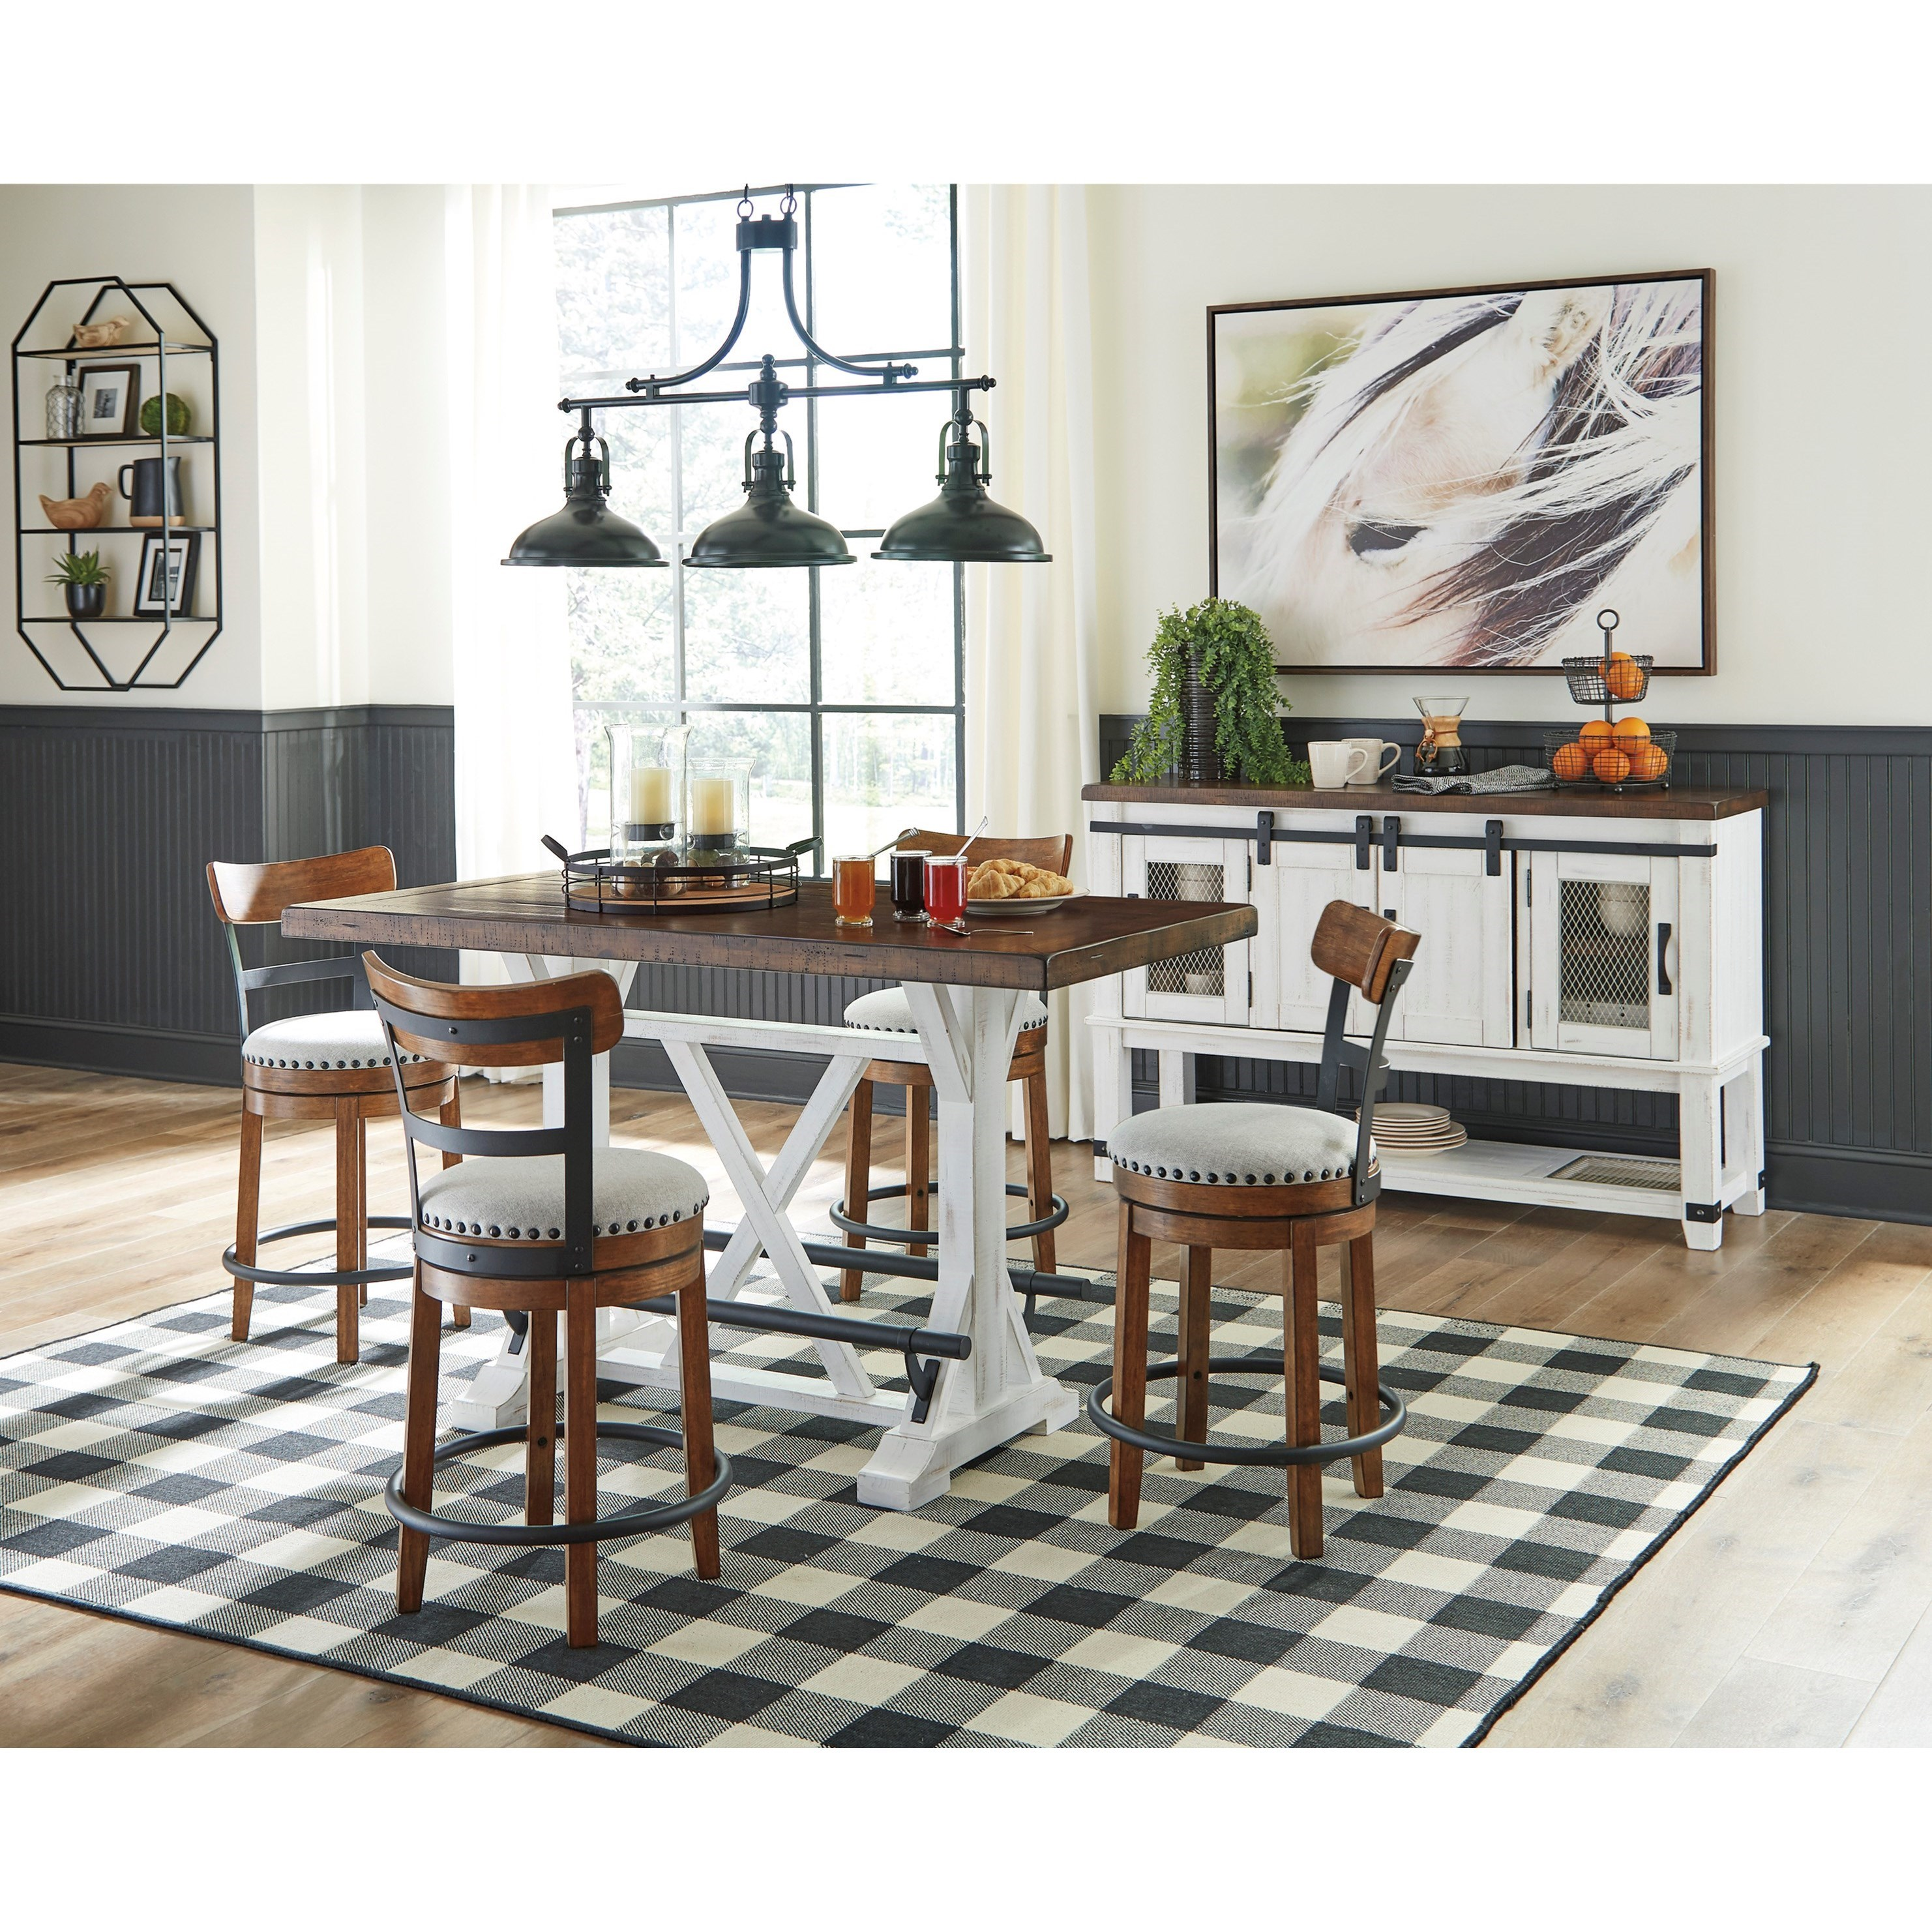 Valebeck Casual Dining Room Group by Signature Design by Ashley at Zak's Warehouse Clearance Center